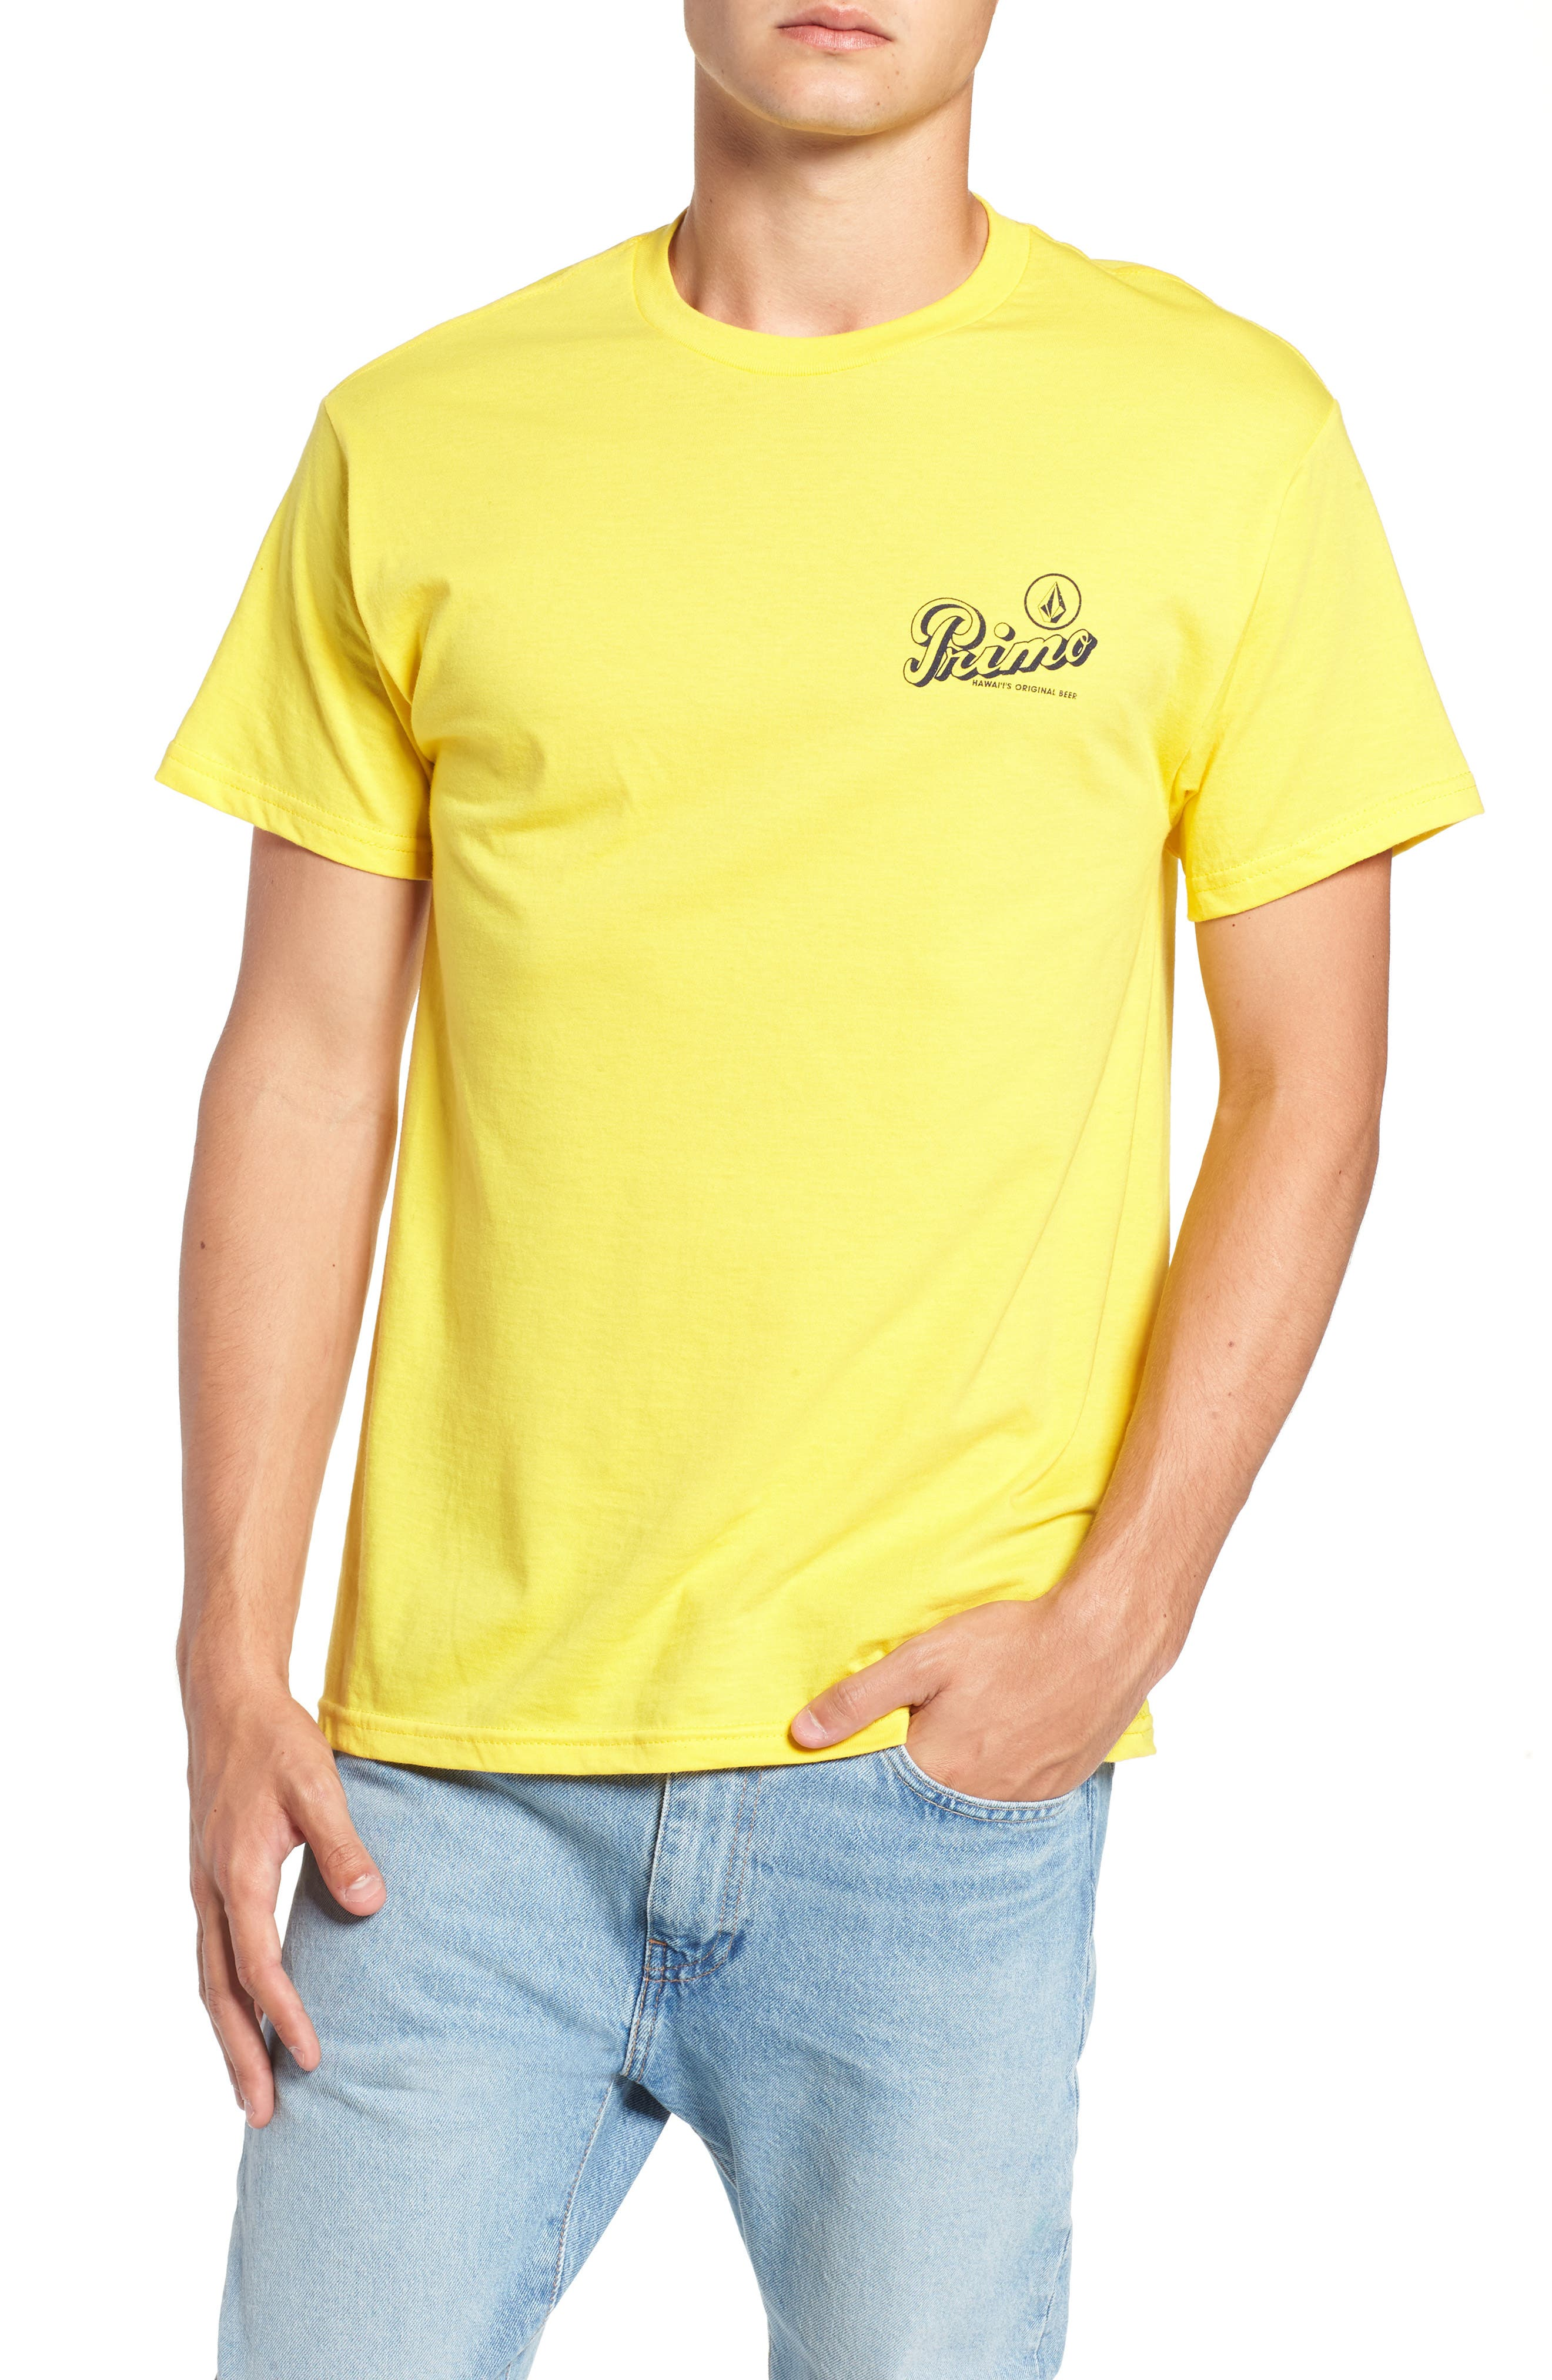 Primo Island T-Shirt,                         Main,                         color, CYBER YELLOW